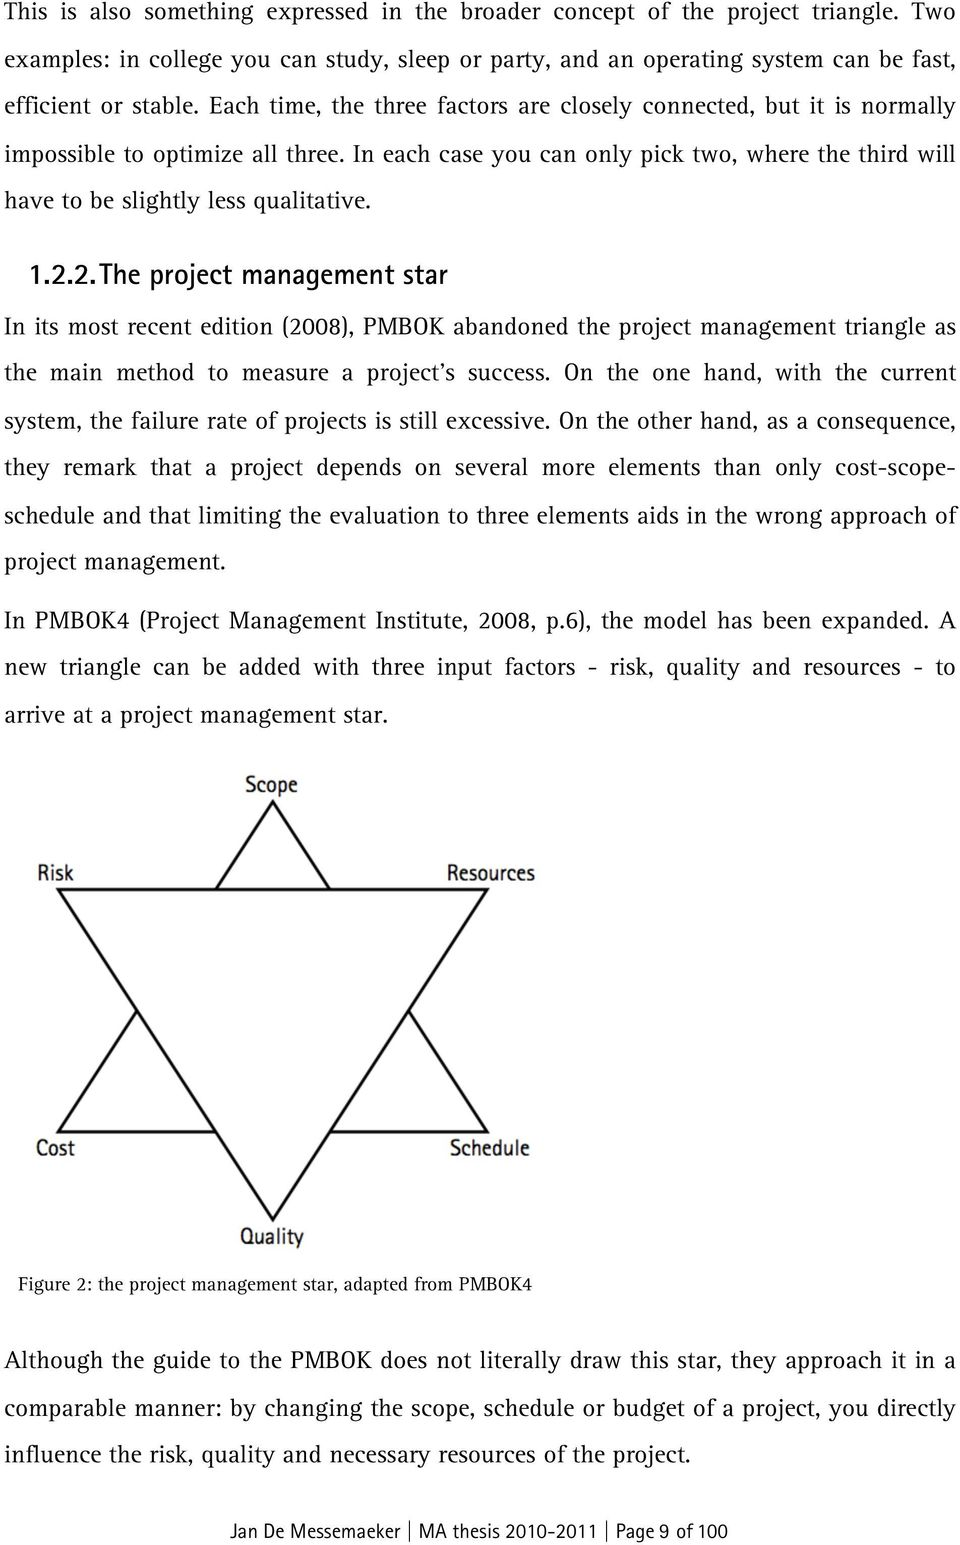 1.2.2.The project management star In its most recent edition (2008), PMBOK abandoned the project management triangle as the main method to measure a project's success.